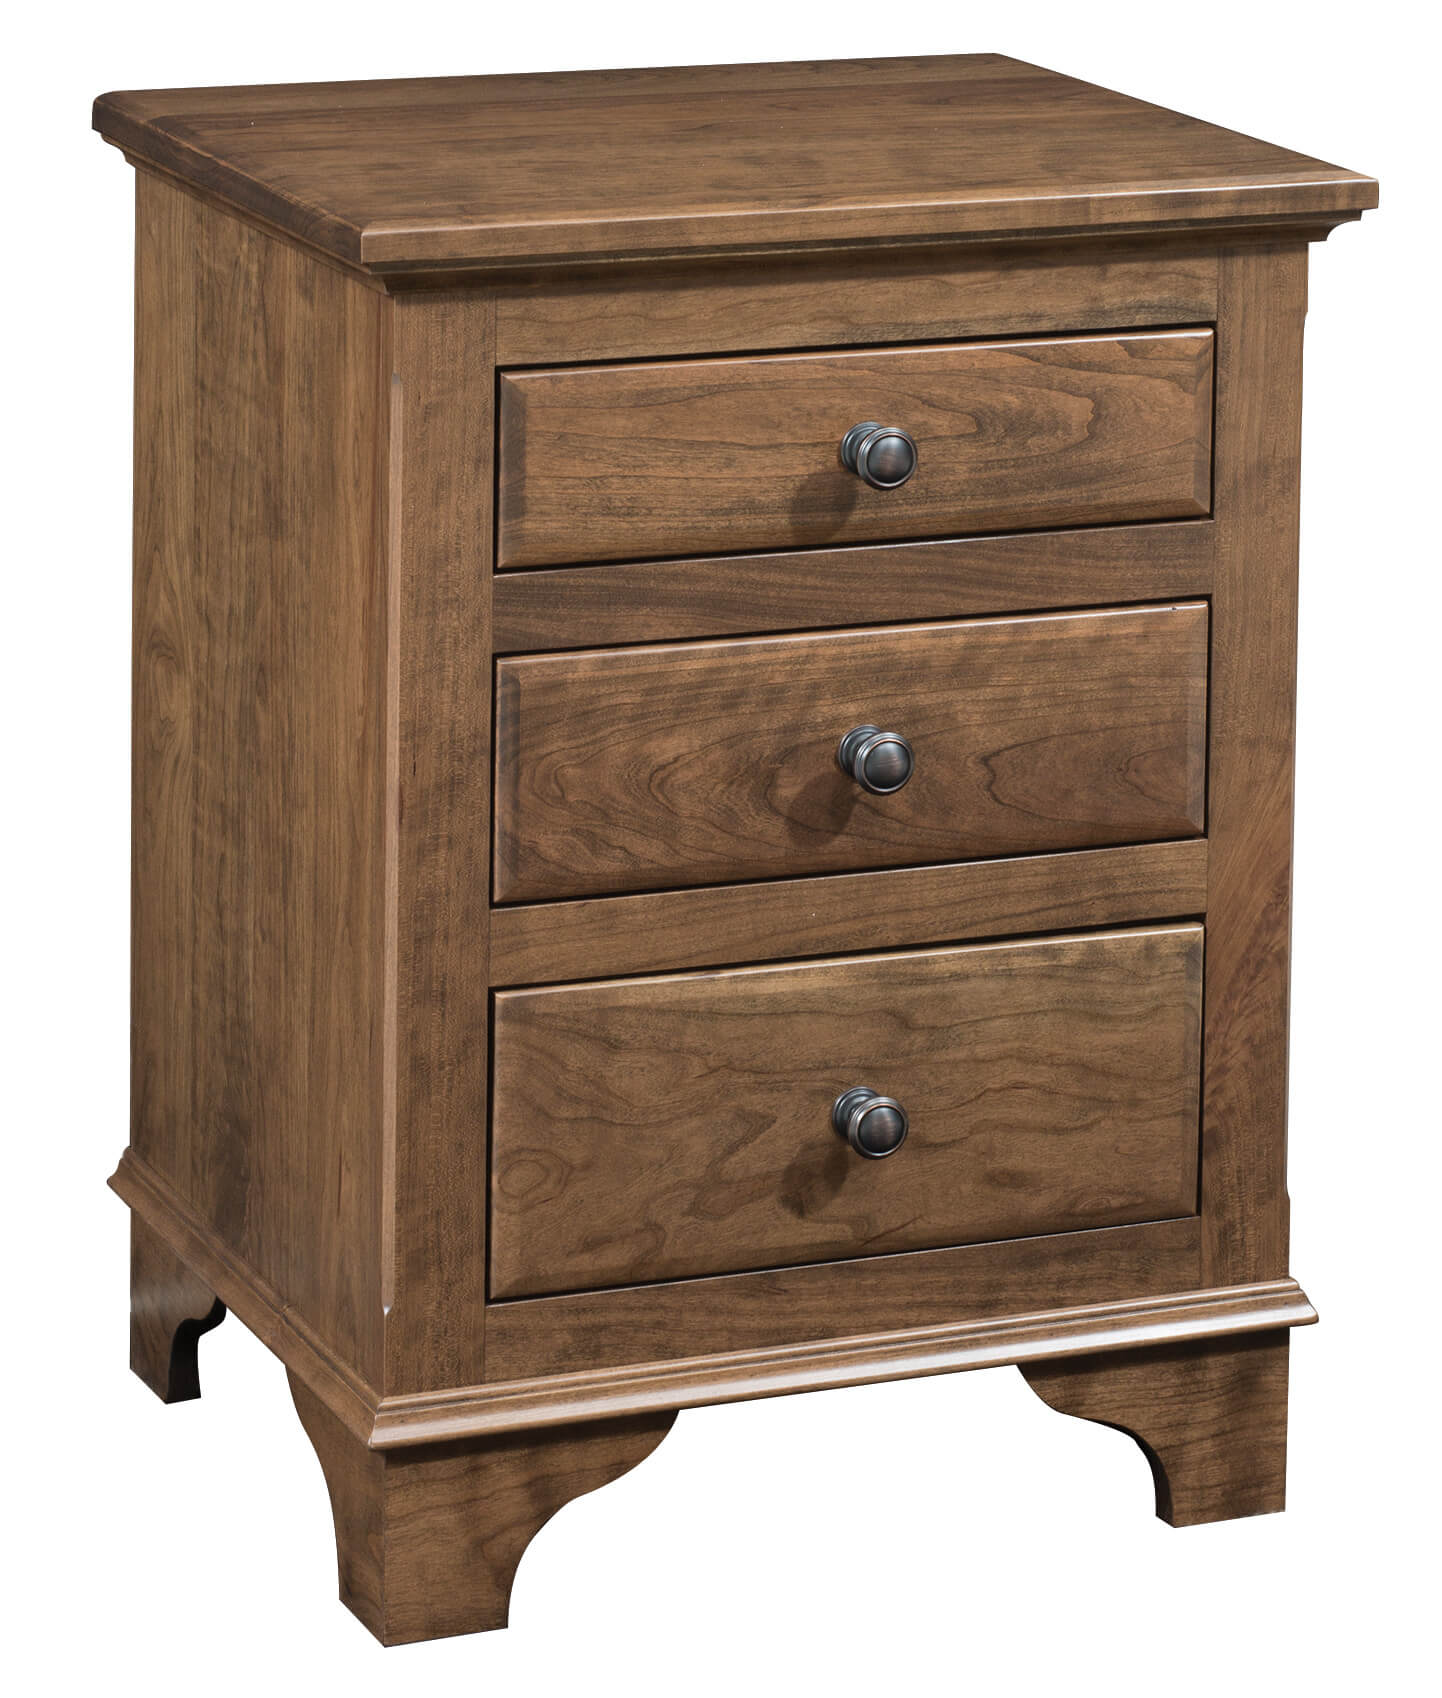 Choices 3 Drawer Nightstand